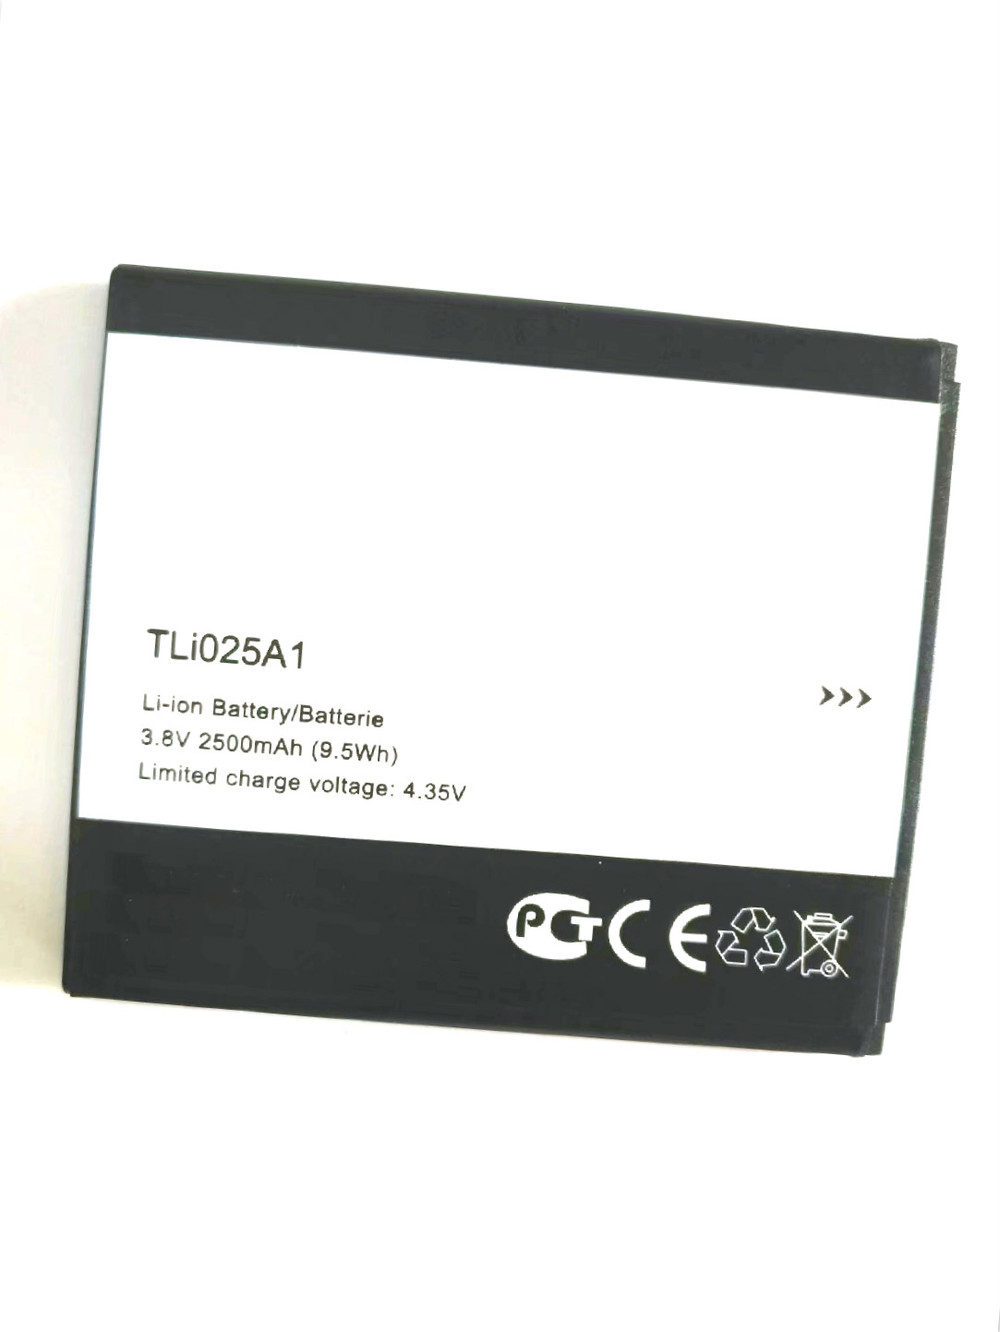 Westrock 2500mAh TLi025A1 Battery For Alcatel One Touch POP 4 5051D Cell Phone